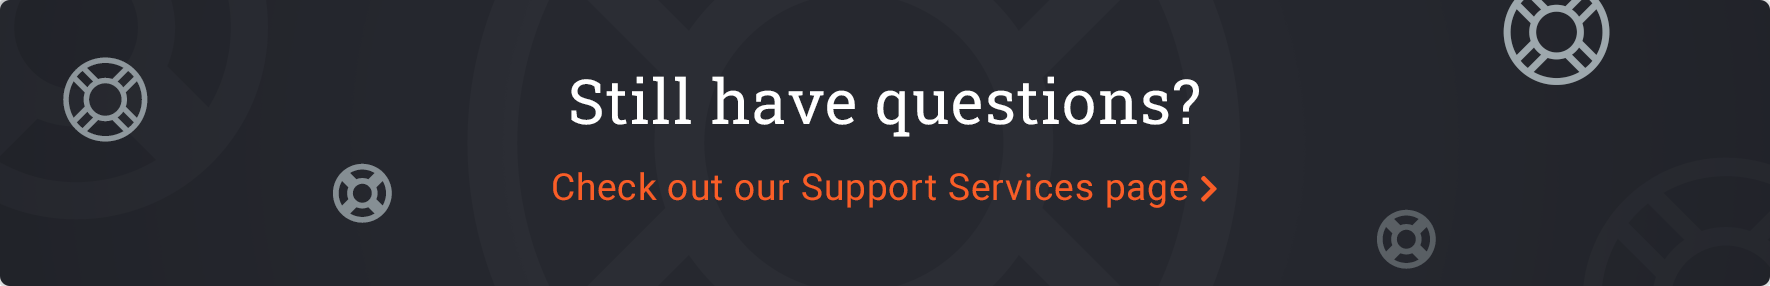 Still have questions? Check out our Support Services page | Acro Media